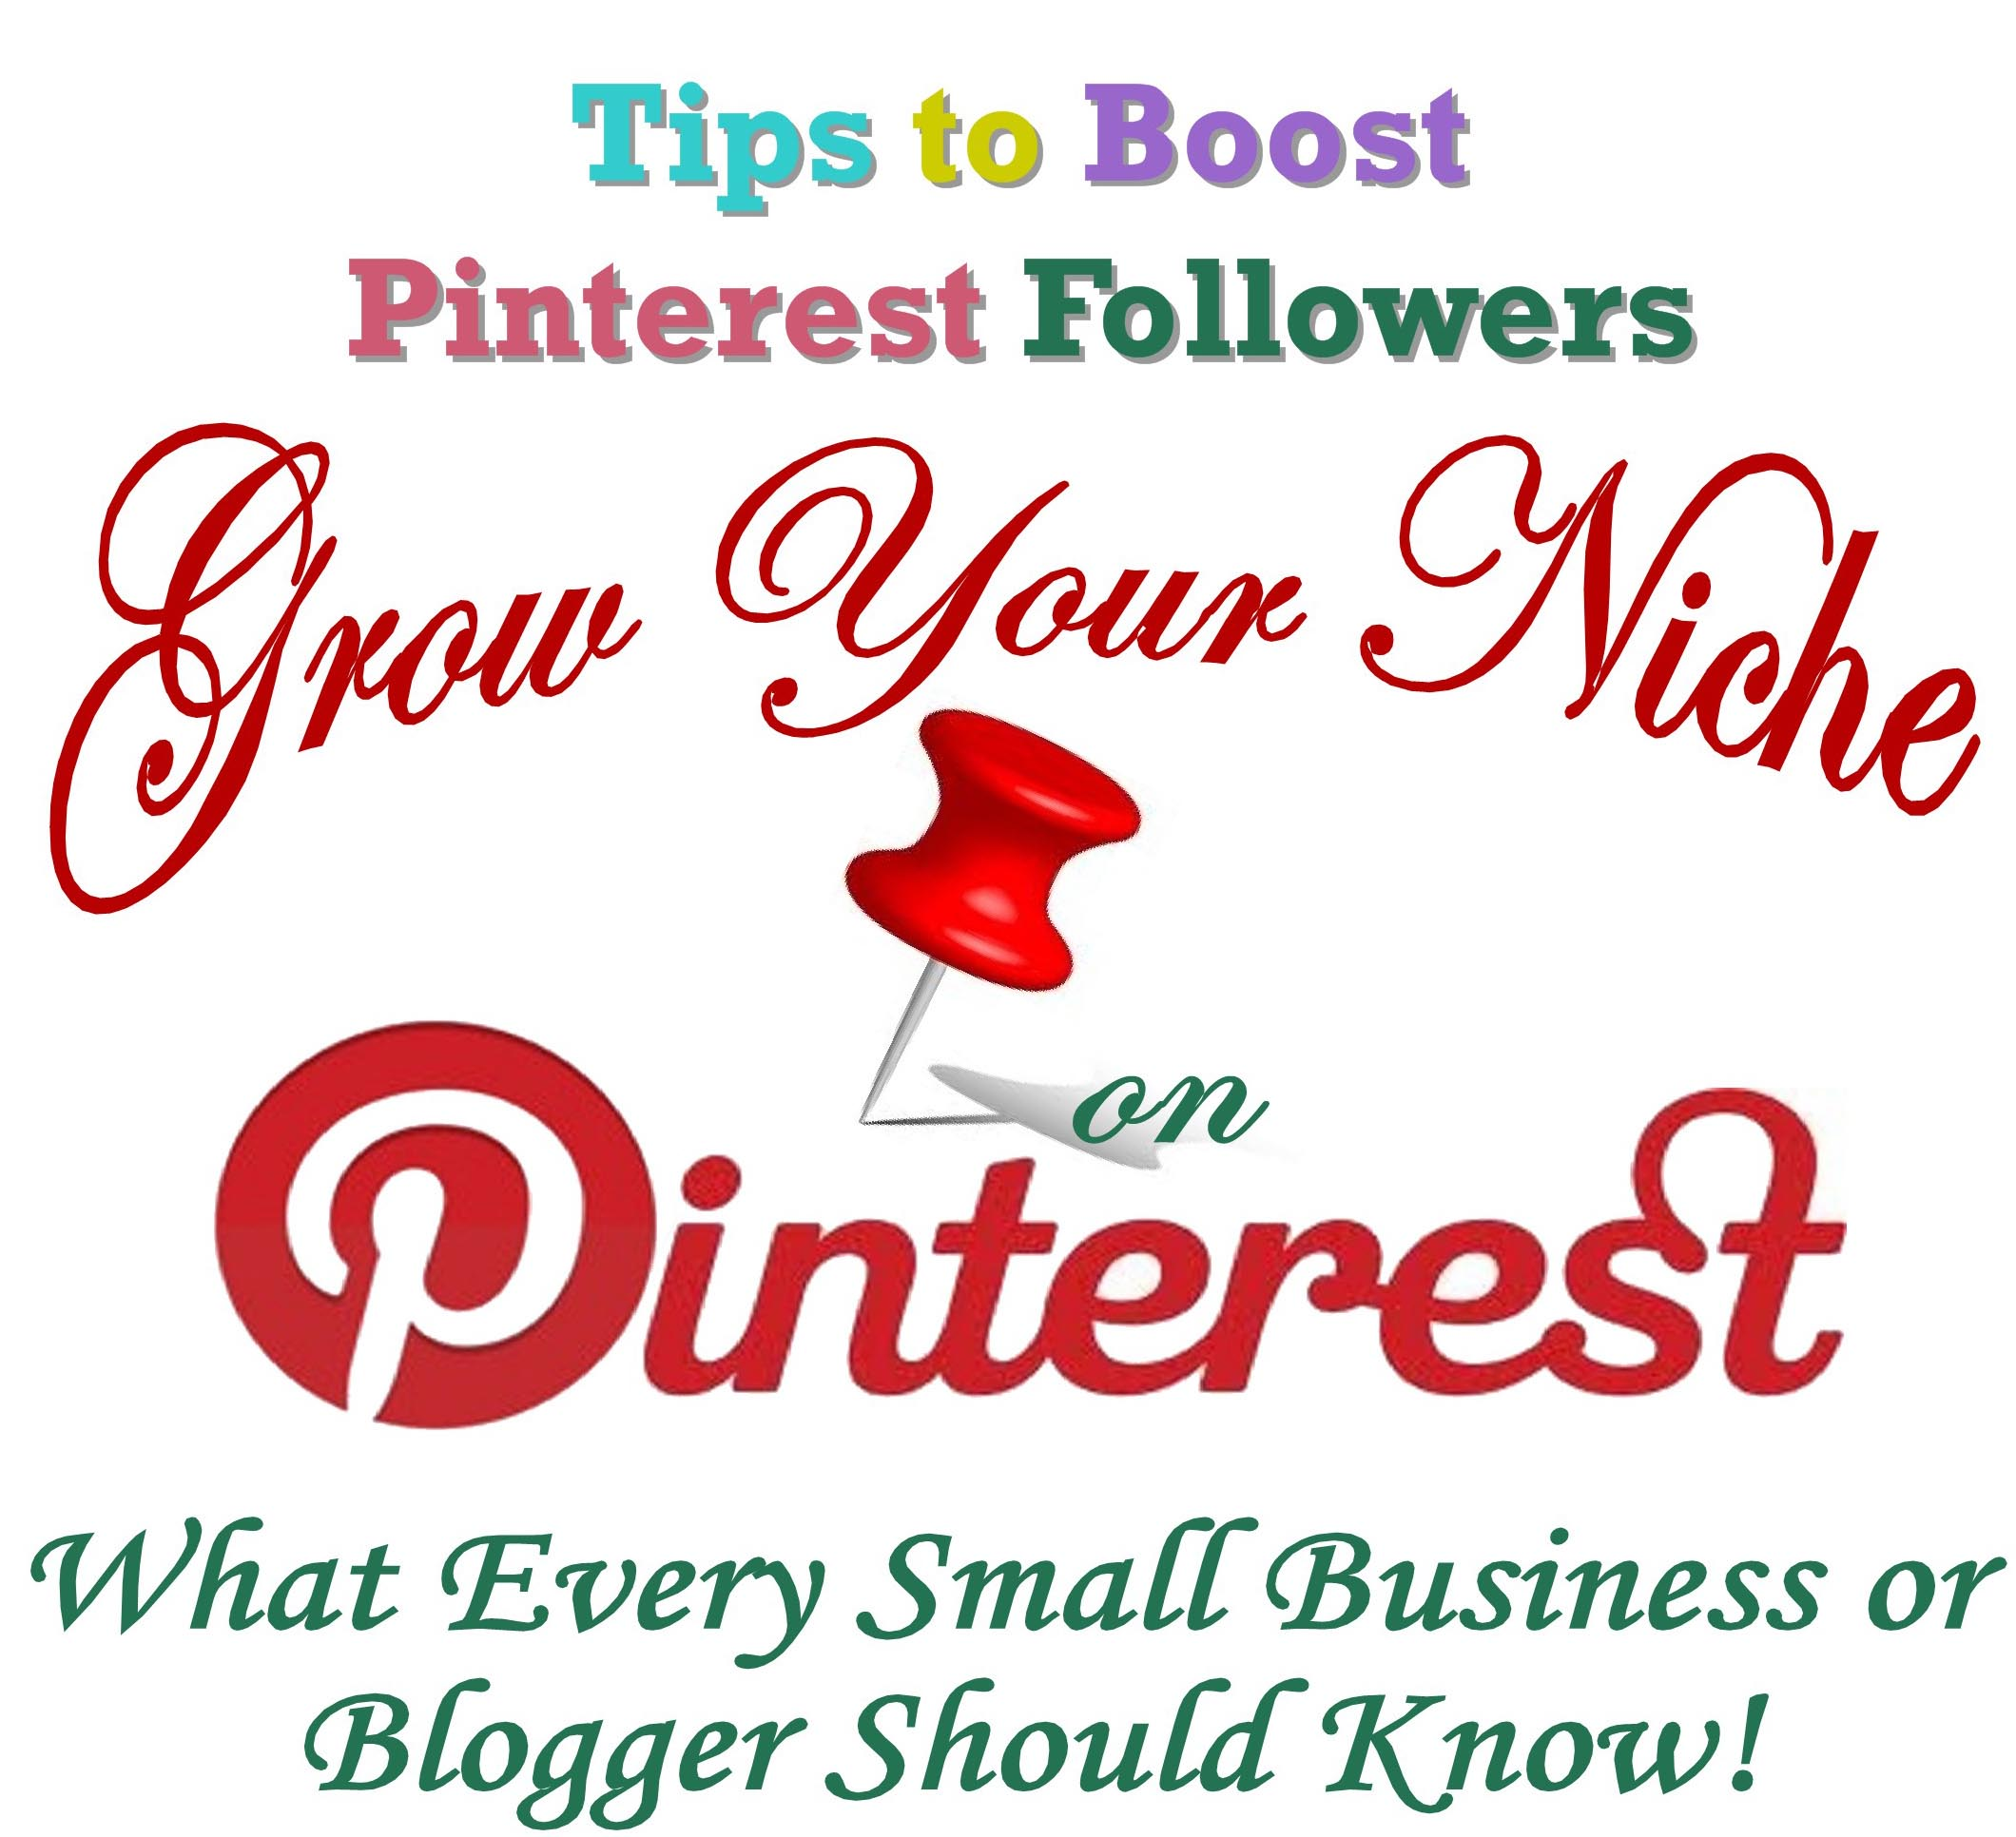 Get You 200 Pinterest Followers